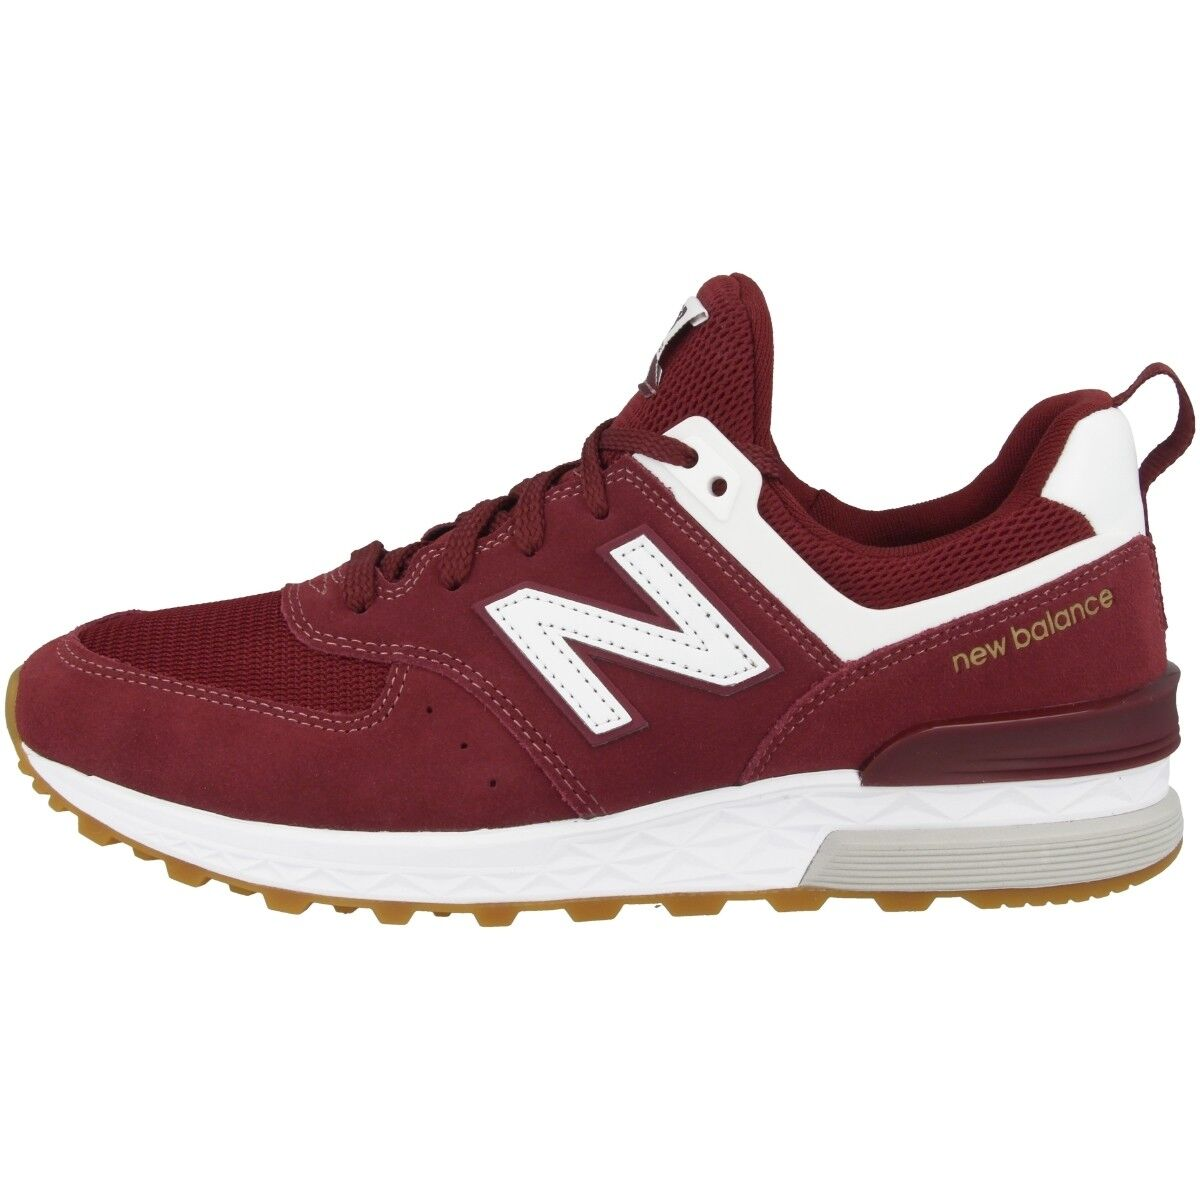 New balance MS 574 ζ zapatos deportivos calcetines calcetines calcetines cortos retro Burgundy blancoooooo ms574fcw 909f4e